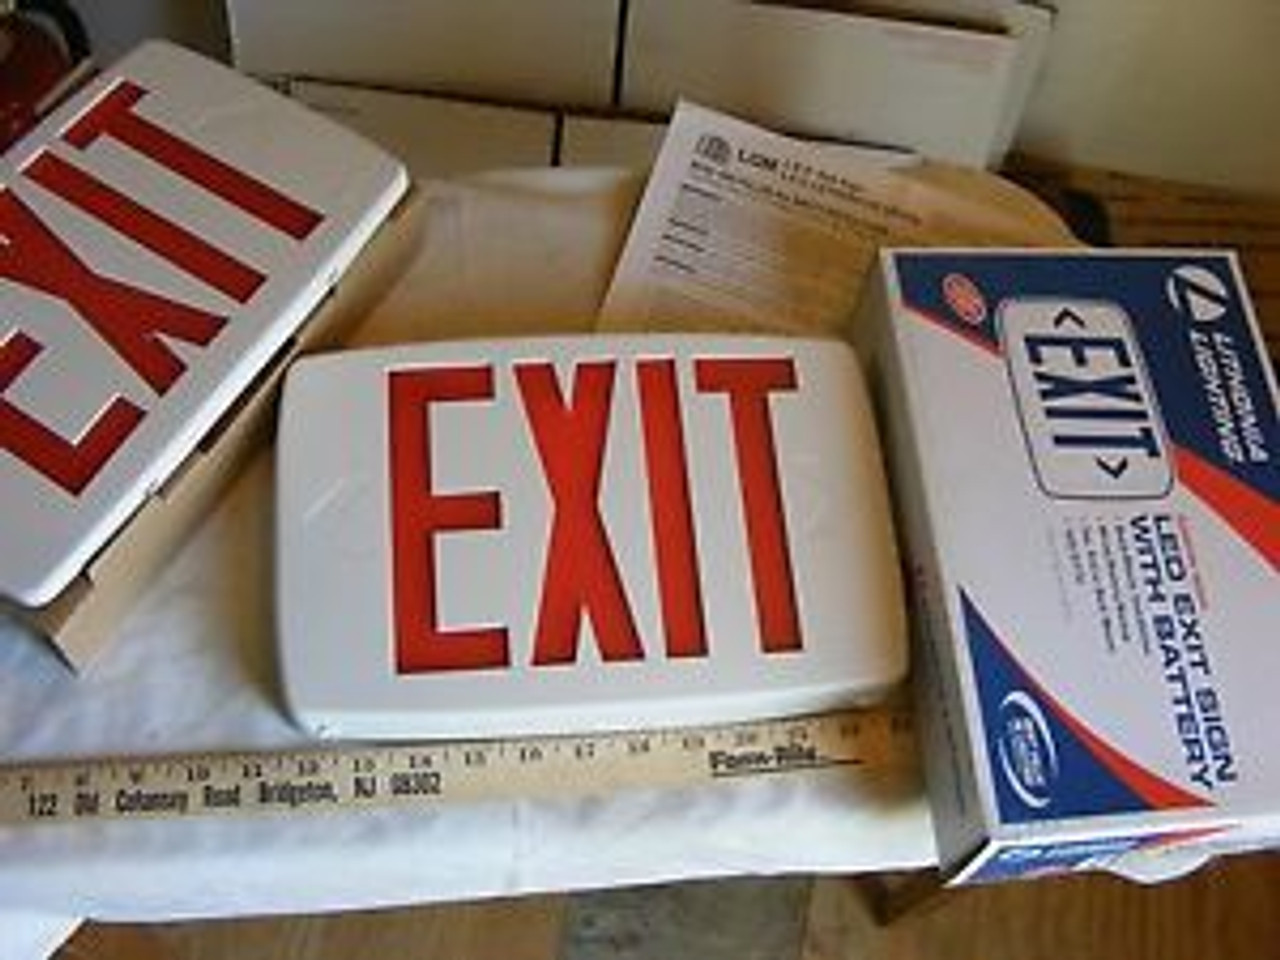 lithonia lighting led exit sign lqm s w 3 r 120 277 el n m6 w extra face plate